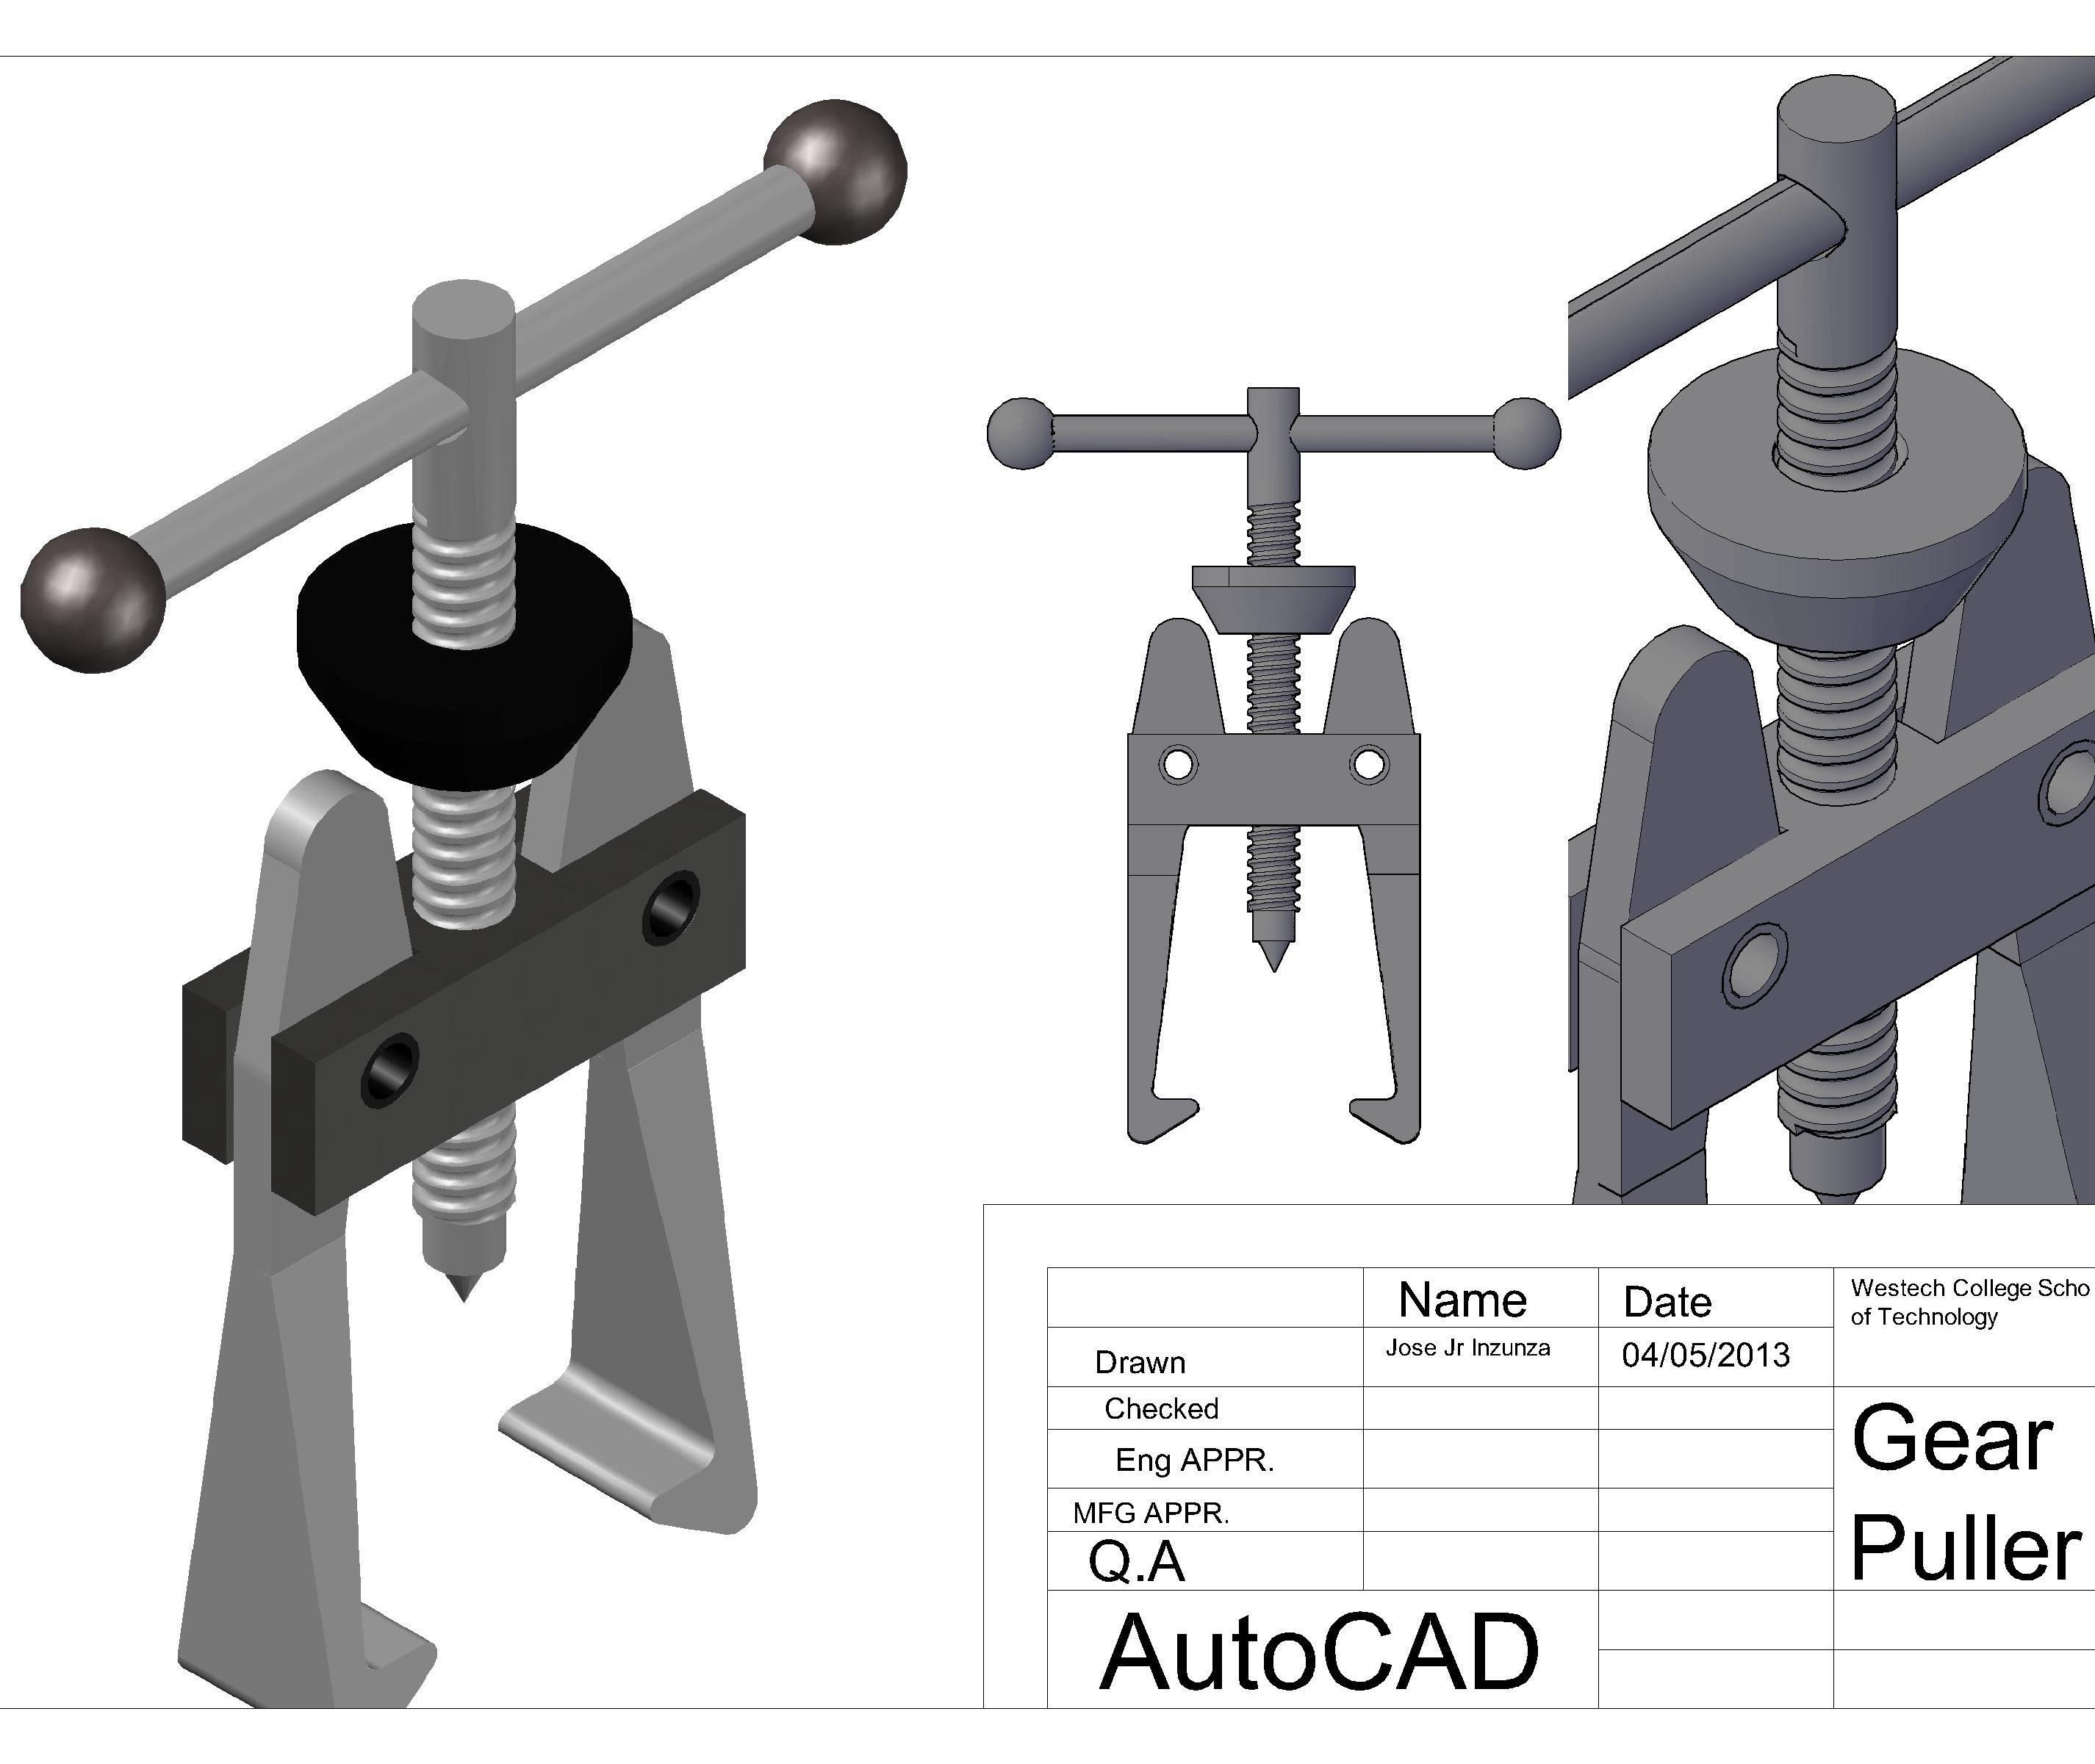 Bearing Puller Cad : Gear puller autocad d machine tools